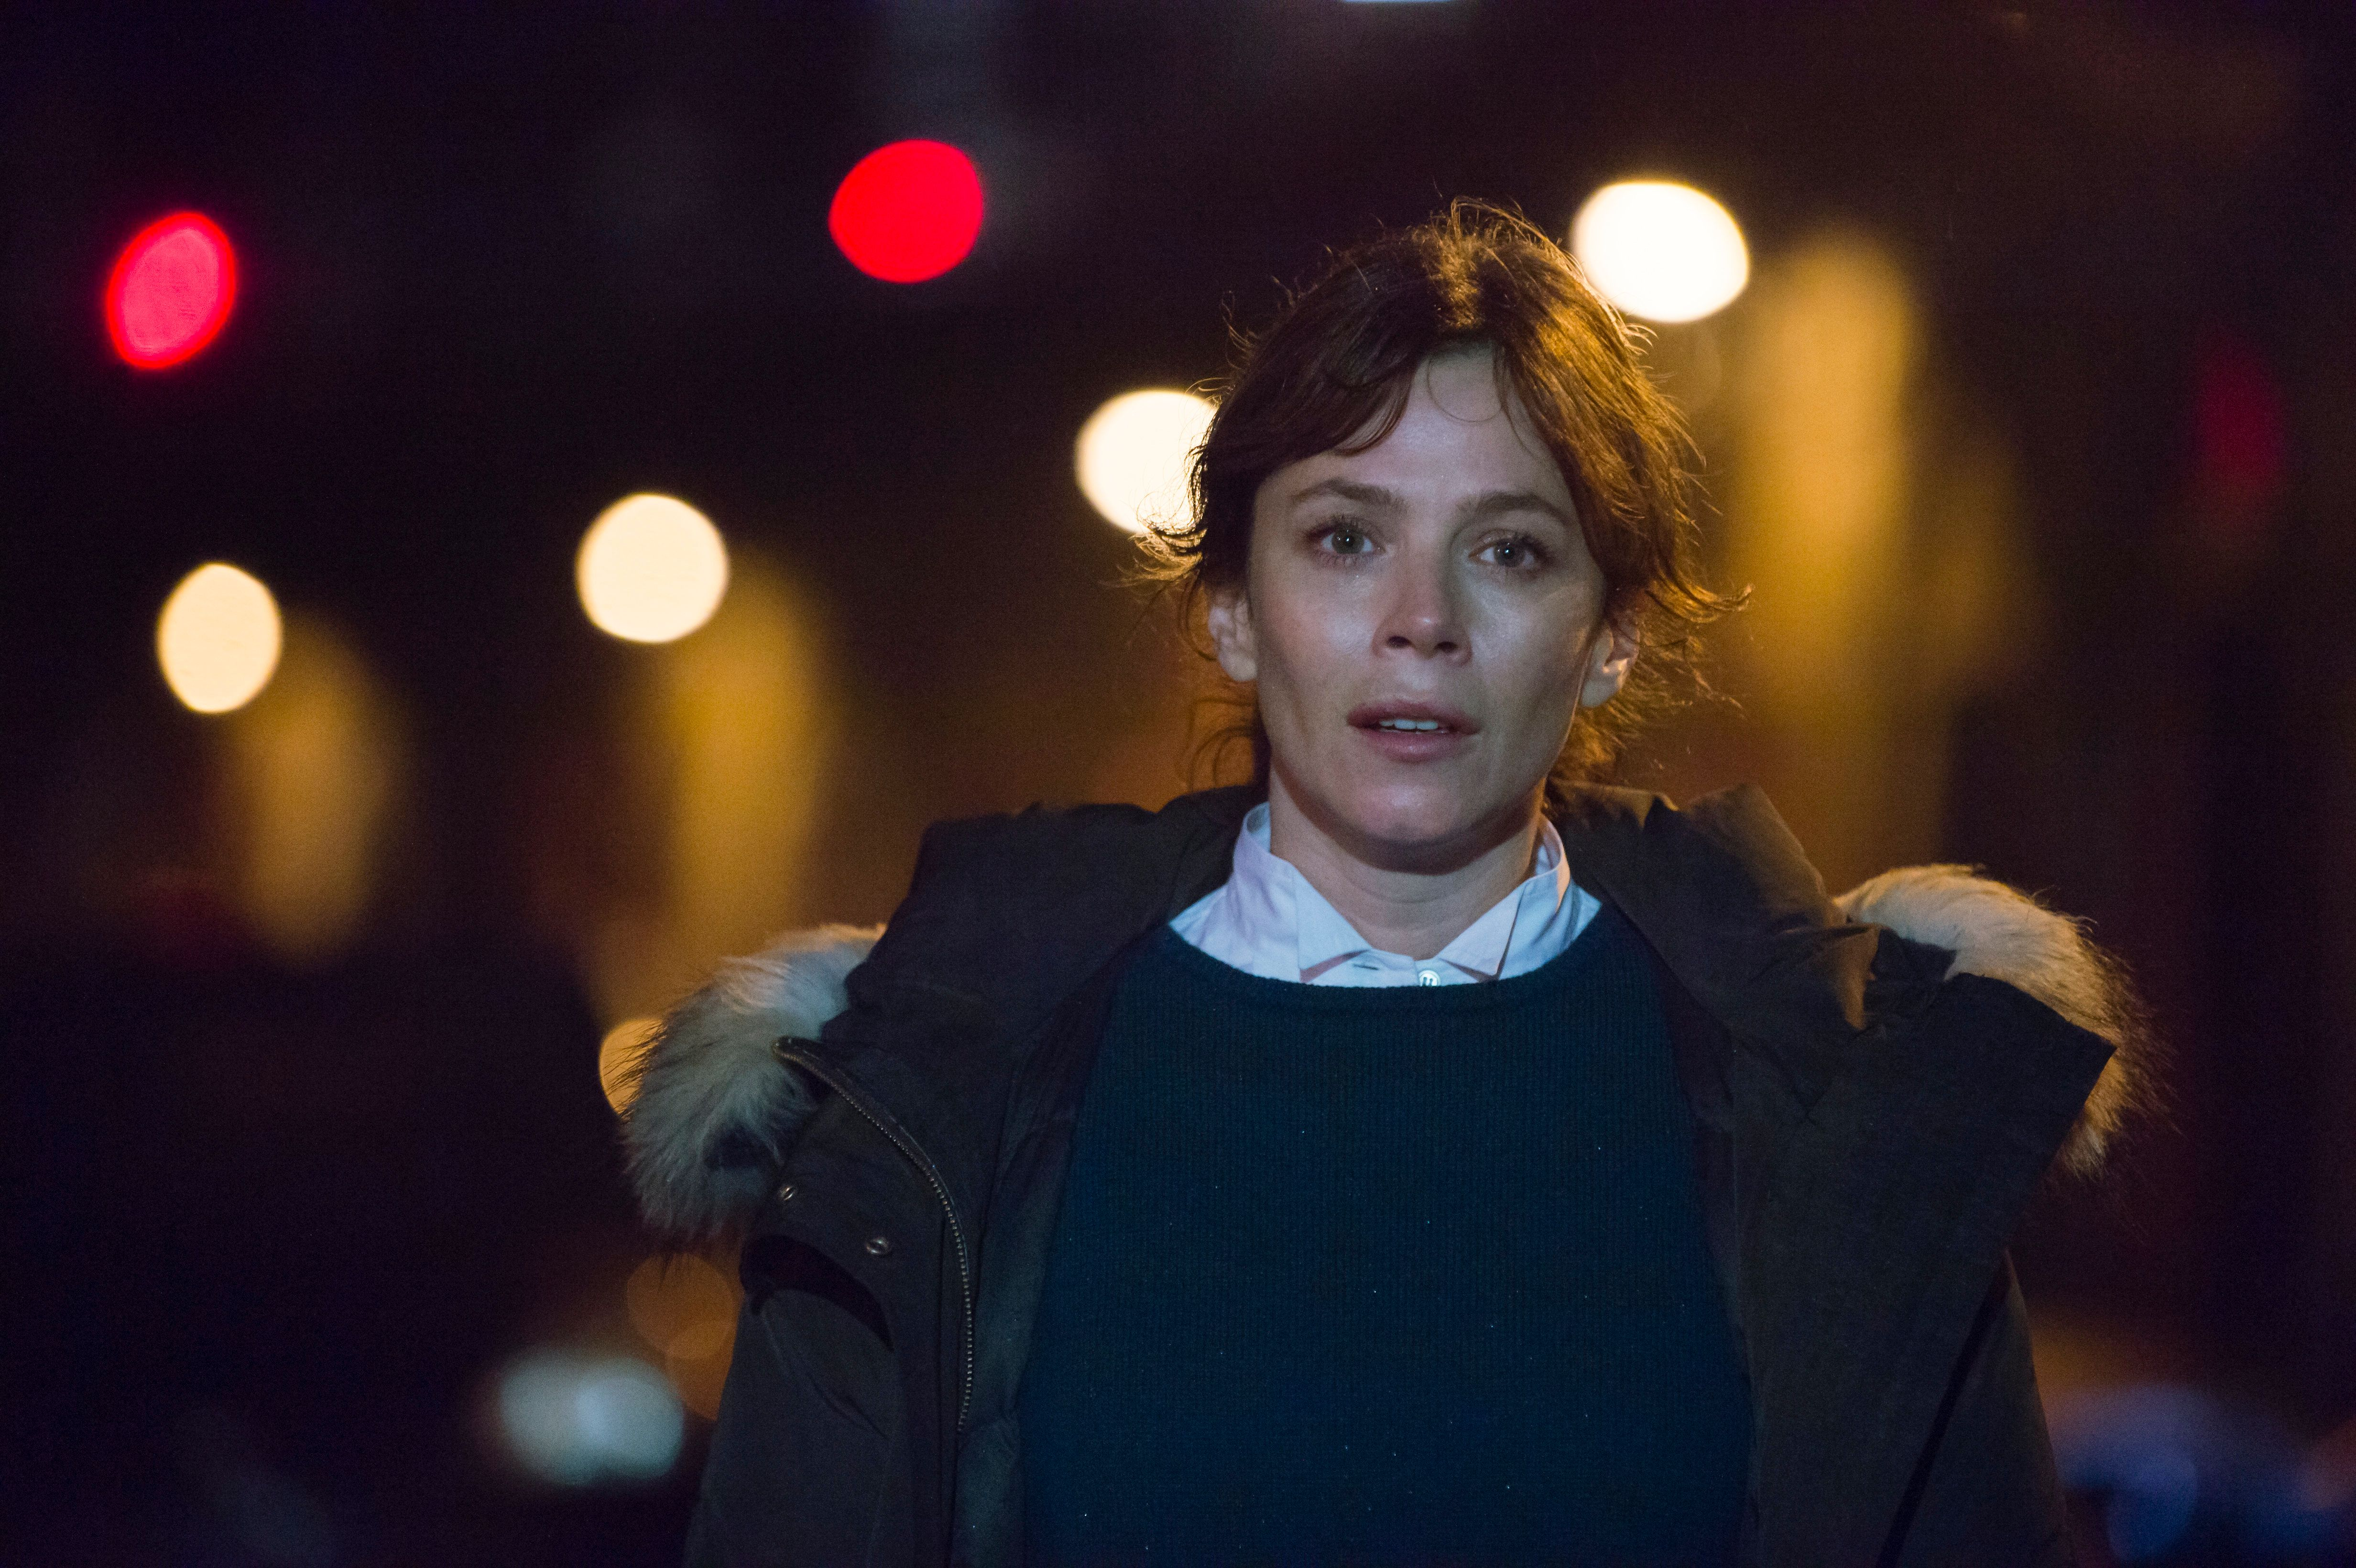 'Marcella' Series 1 Ending Explained, As Anna Friel Reprises Role For New